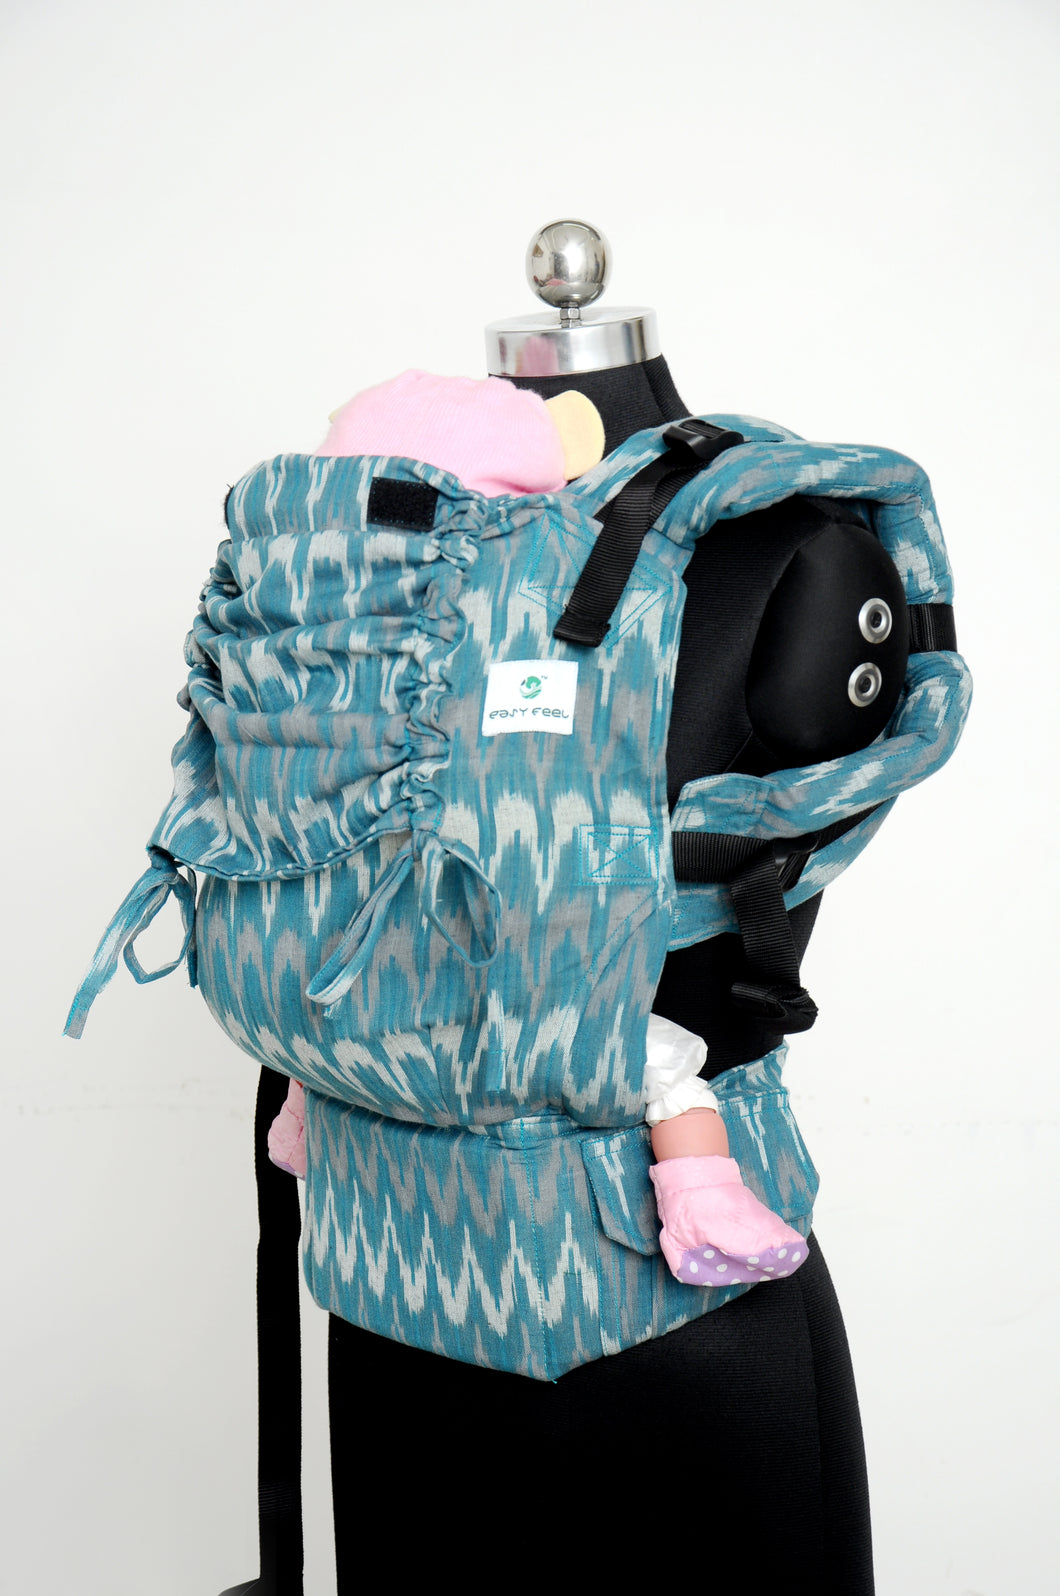 Easy Feel Full Buckle Ergonomic Wrap Converted Soft Structured Carrier (Preschool Size) - Teal